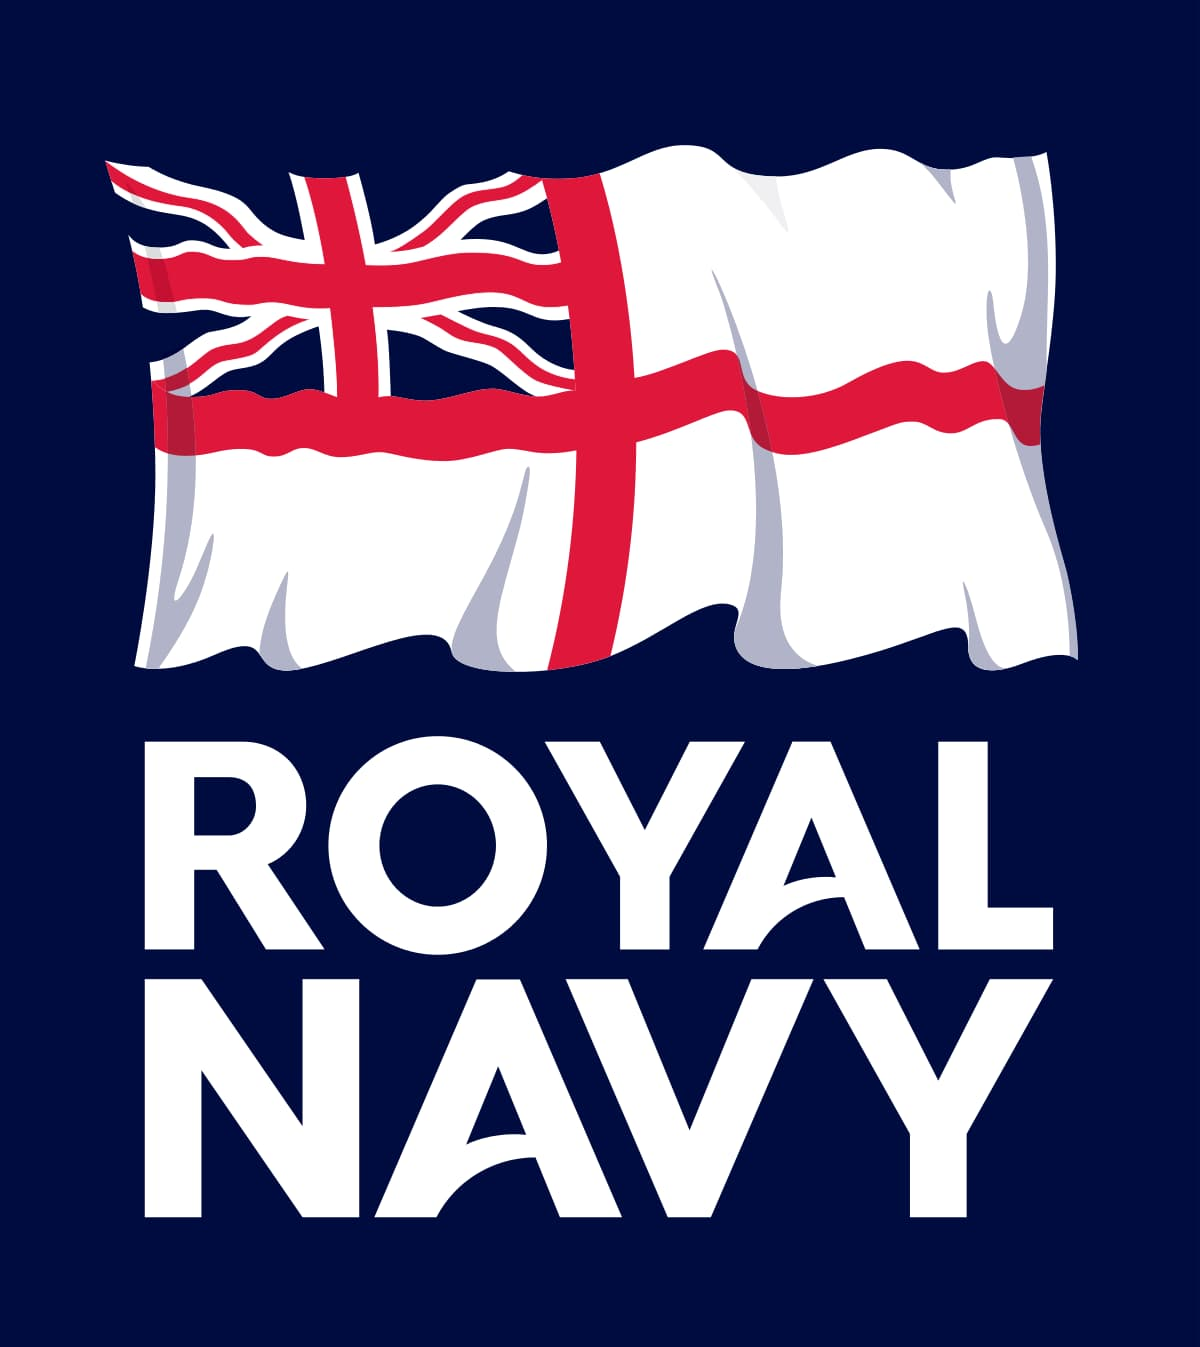 The Royal Navy logo